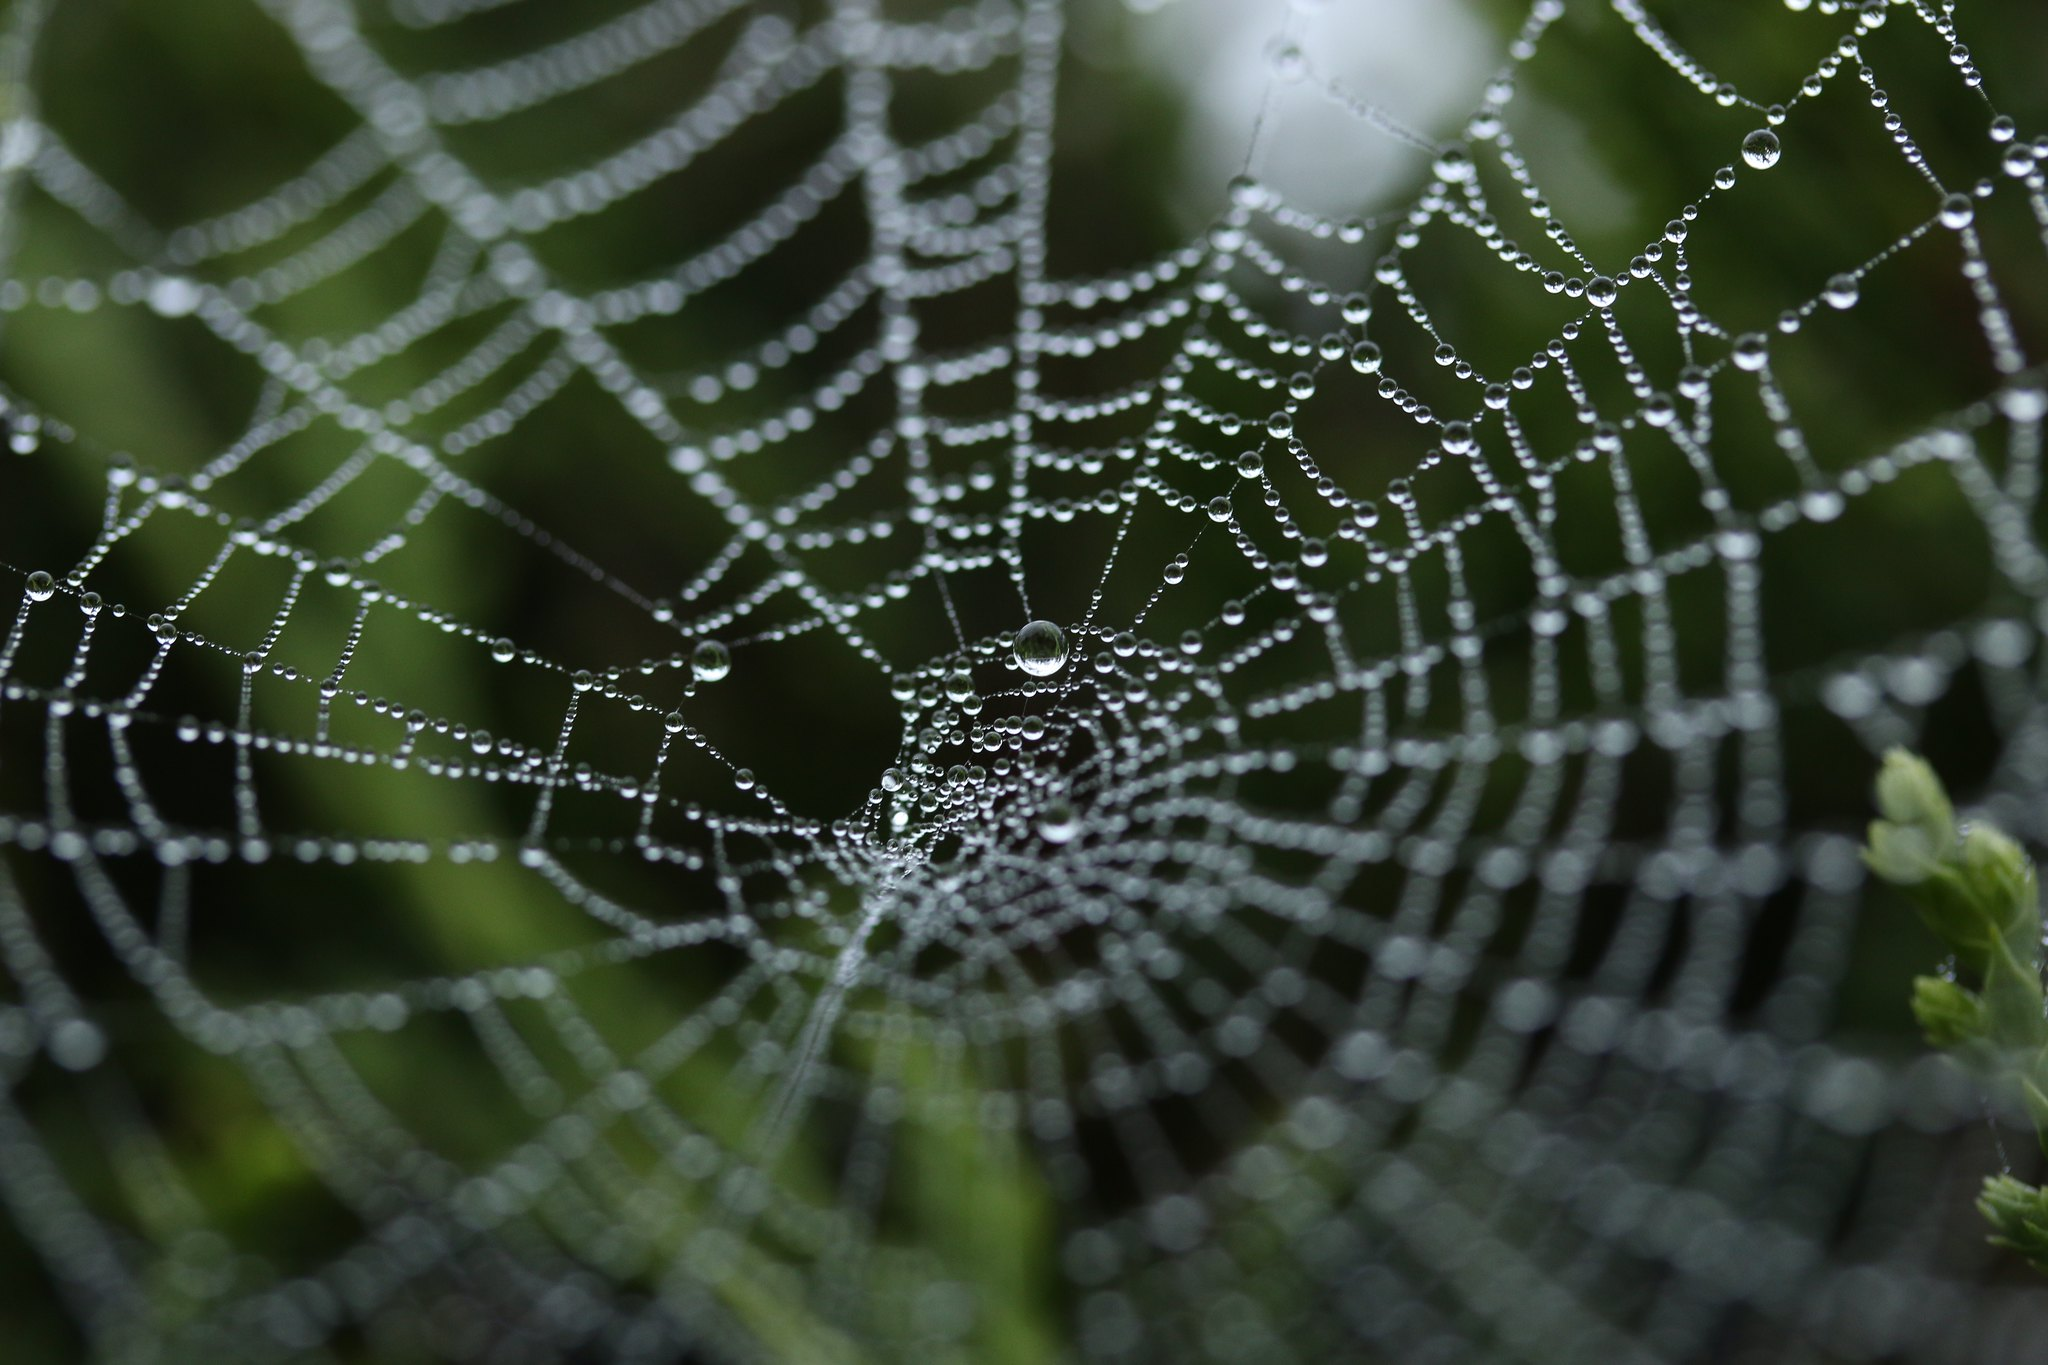 Spiders Silk